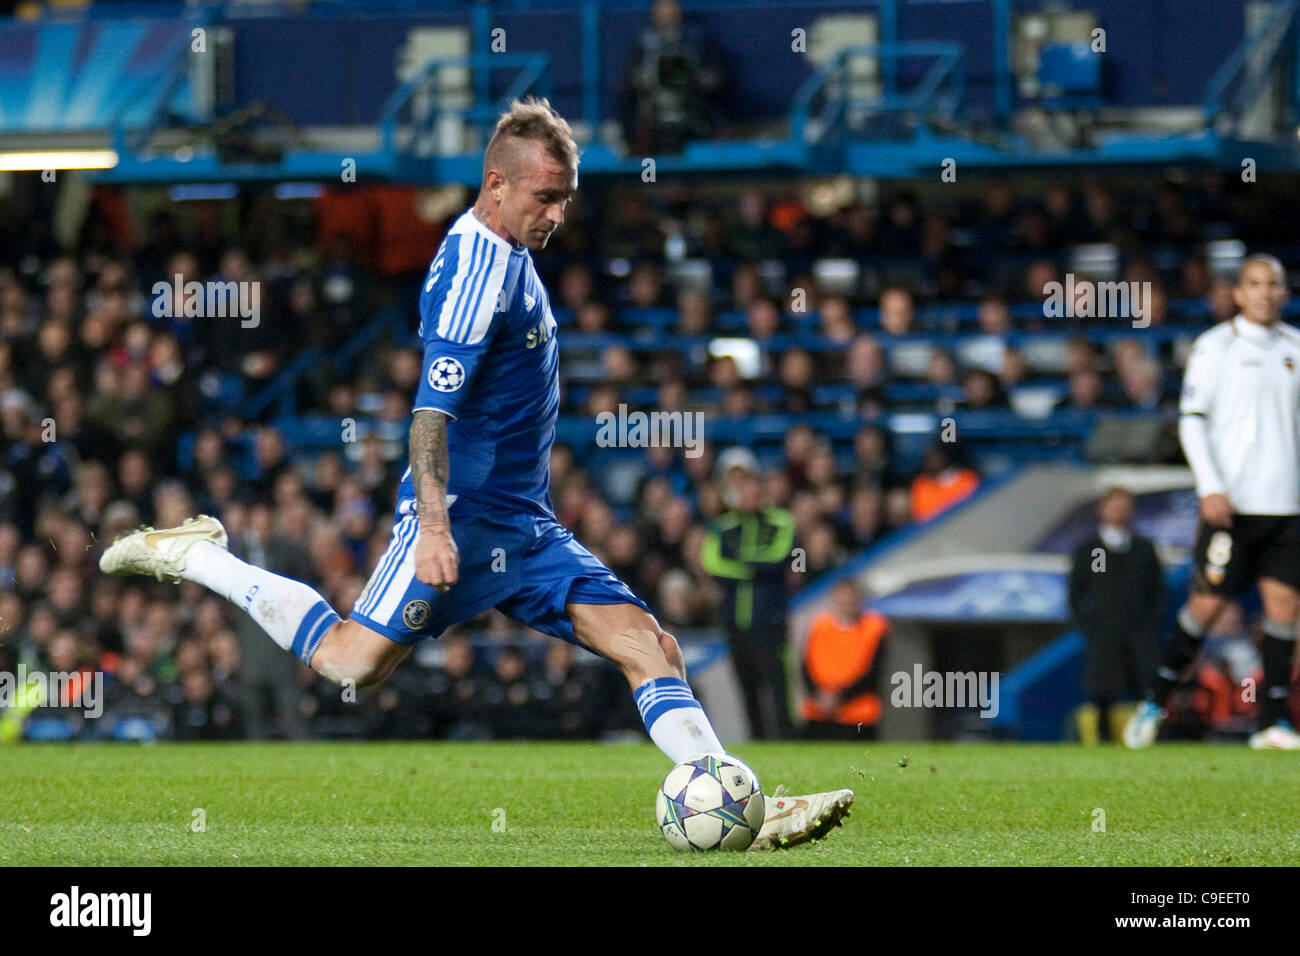 06.12.2011. London, England. Chelsea's Portuguese midfielder Raul Meireles  in action during the UEFA Champions League group match between Chelsea and  Valencia from Spain, played at Stamford Bridge Stadium Stock Photo - Alamy